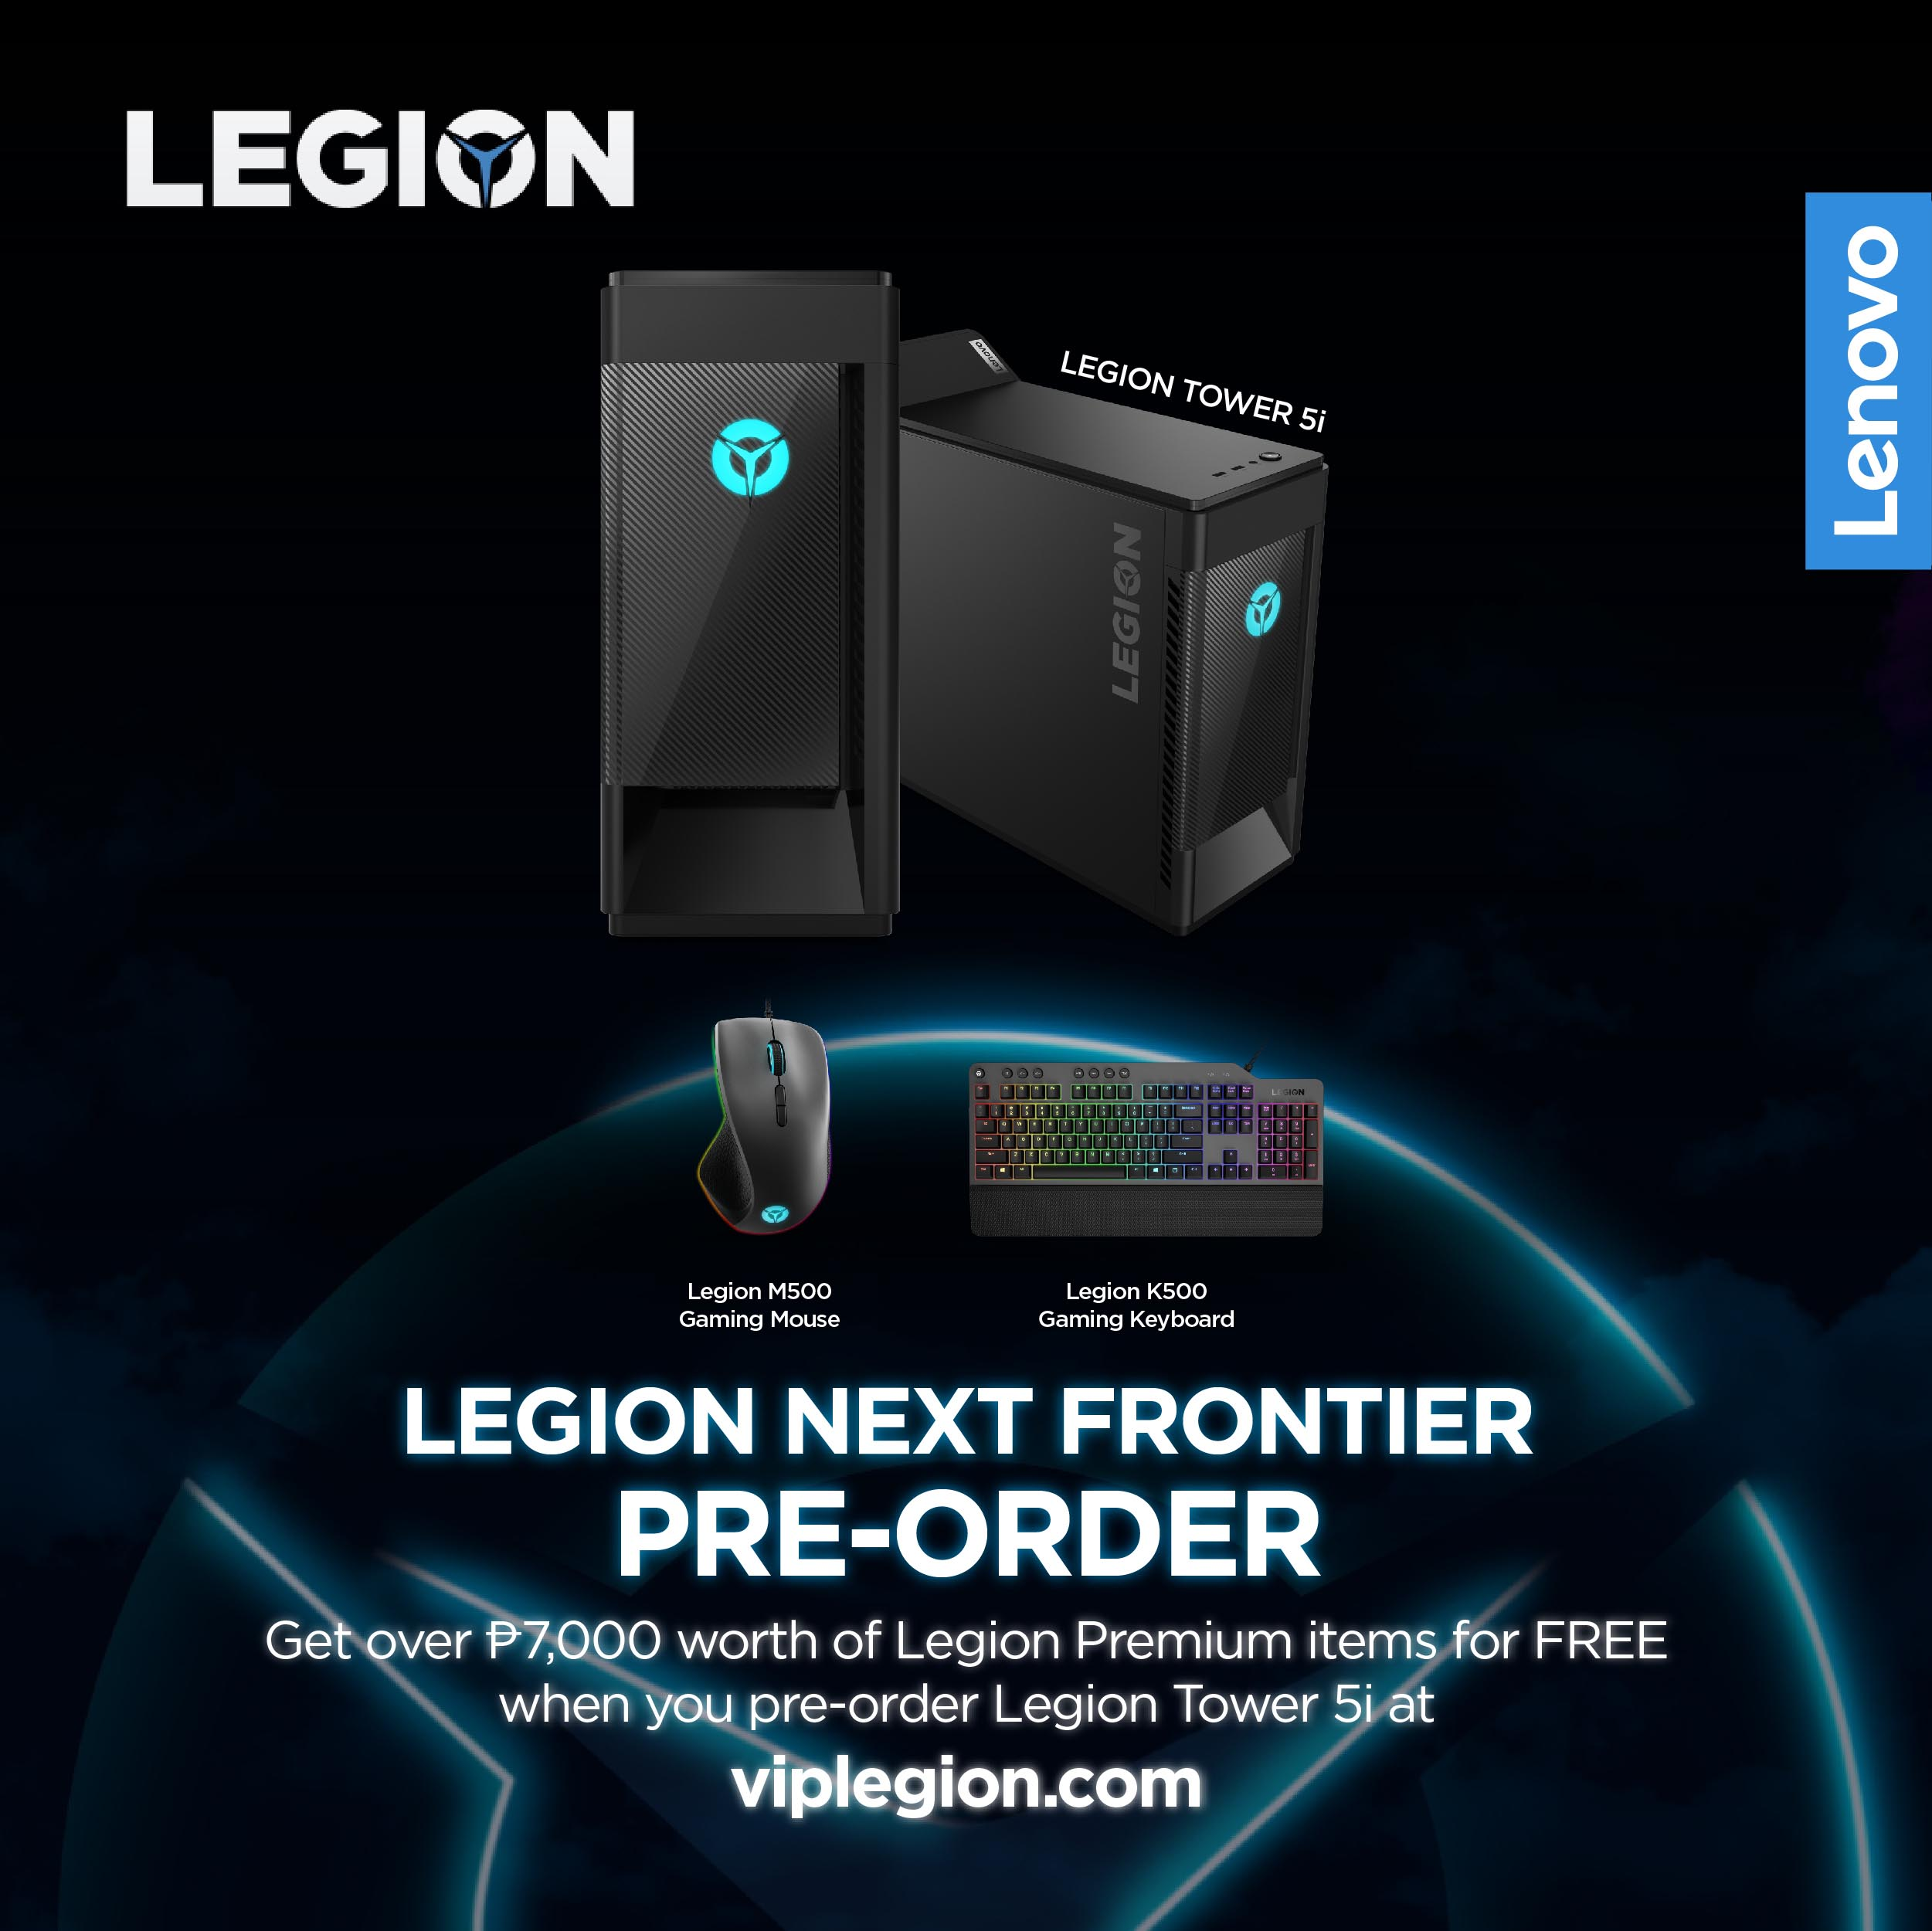 lenovo-legion-gaming-laptops-and-tower-pre-order-details-image-1